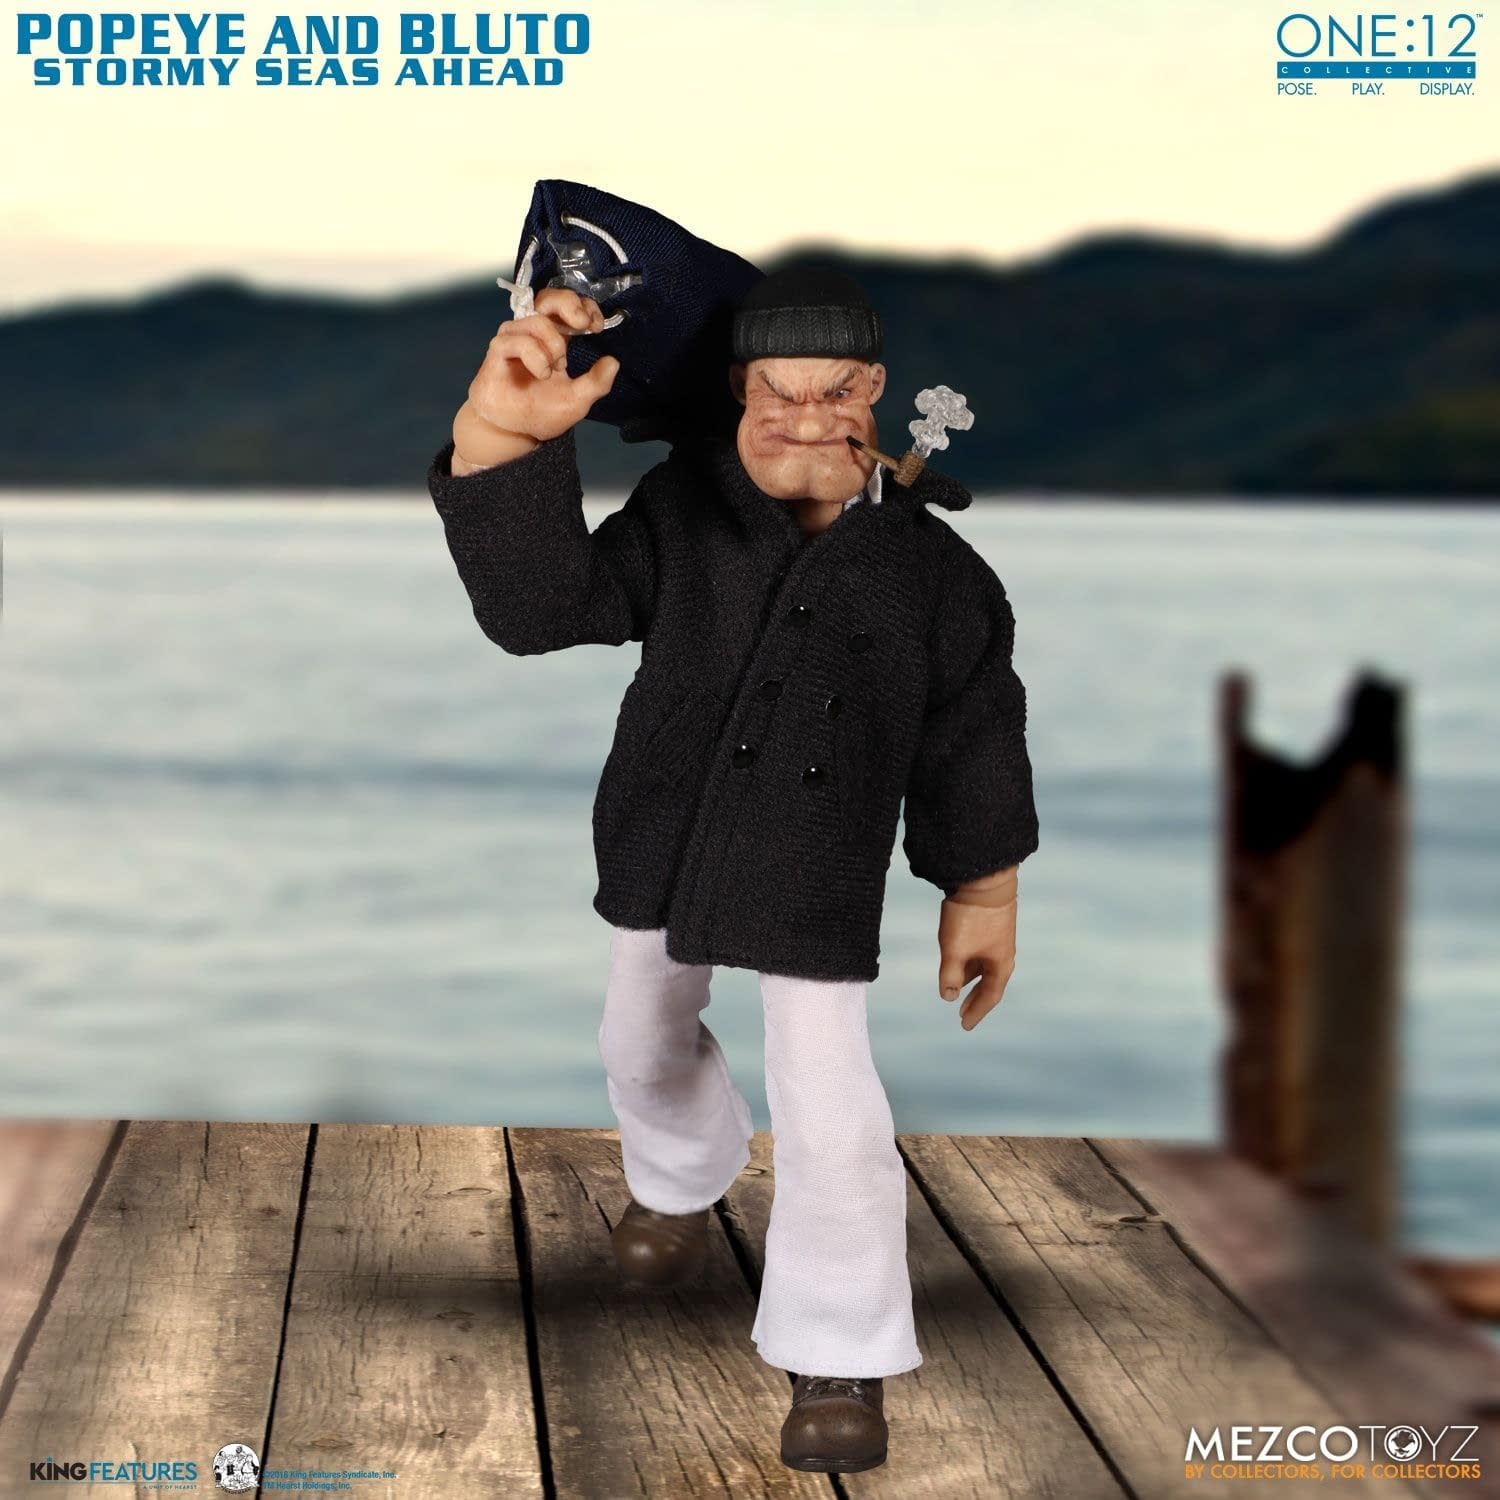 Popeye is Ready to Knock Some Skulls with New Mezco Two-Pack